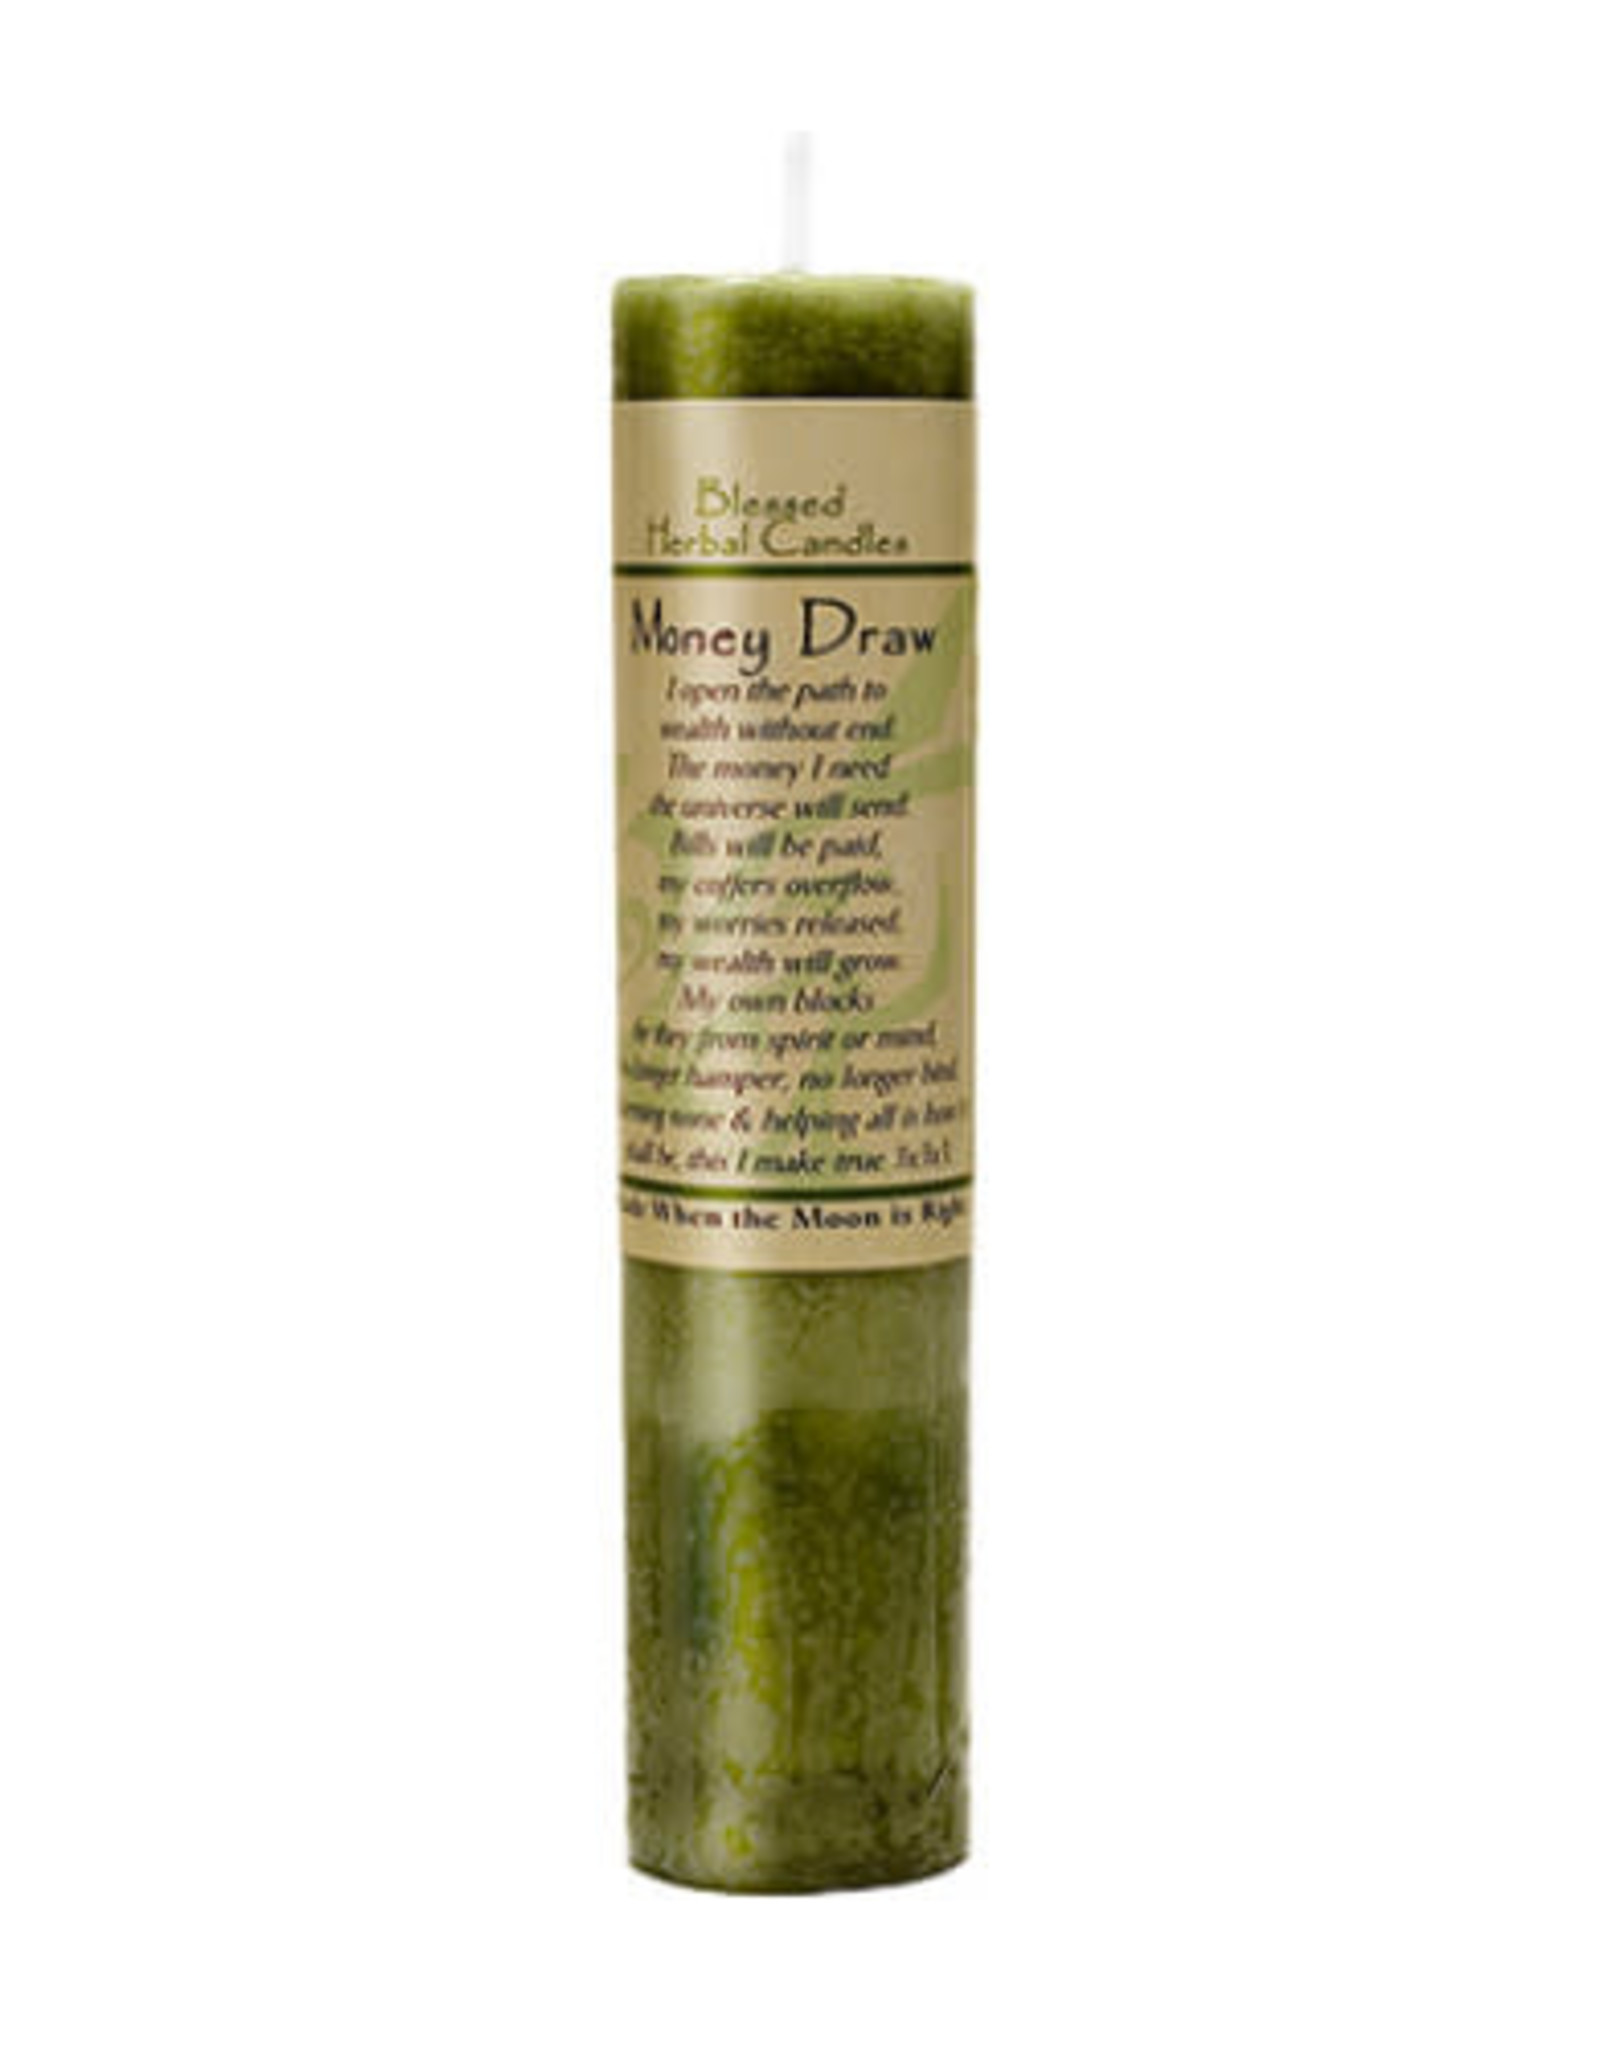 Coventry Creations Blessed Herbal Candle - Money Draw